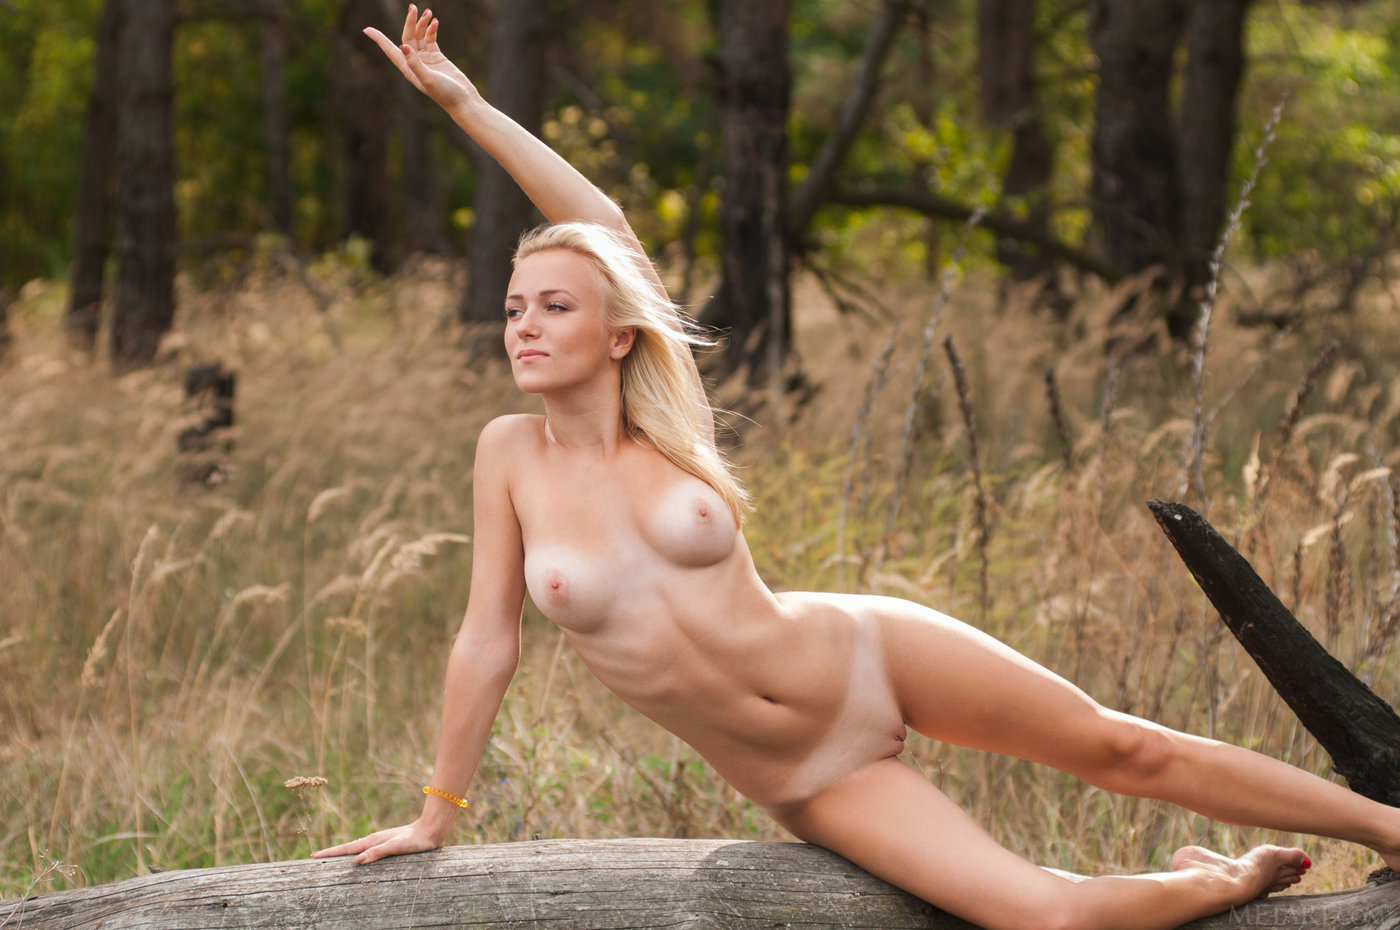 Pale blonde with tan lines posing totally naked on a fallen tree